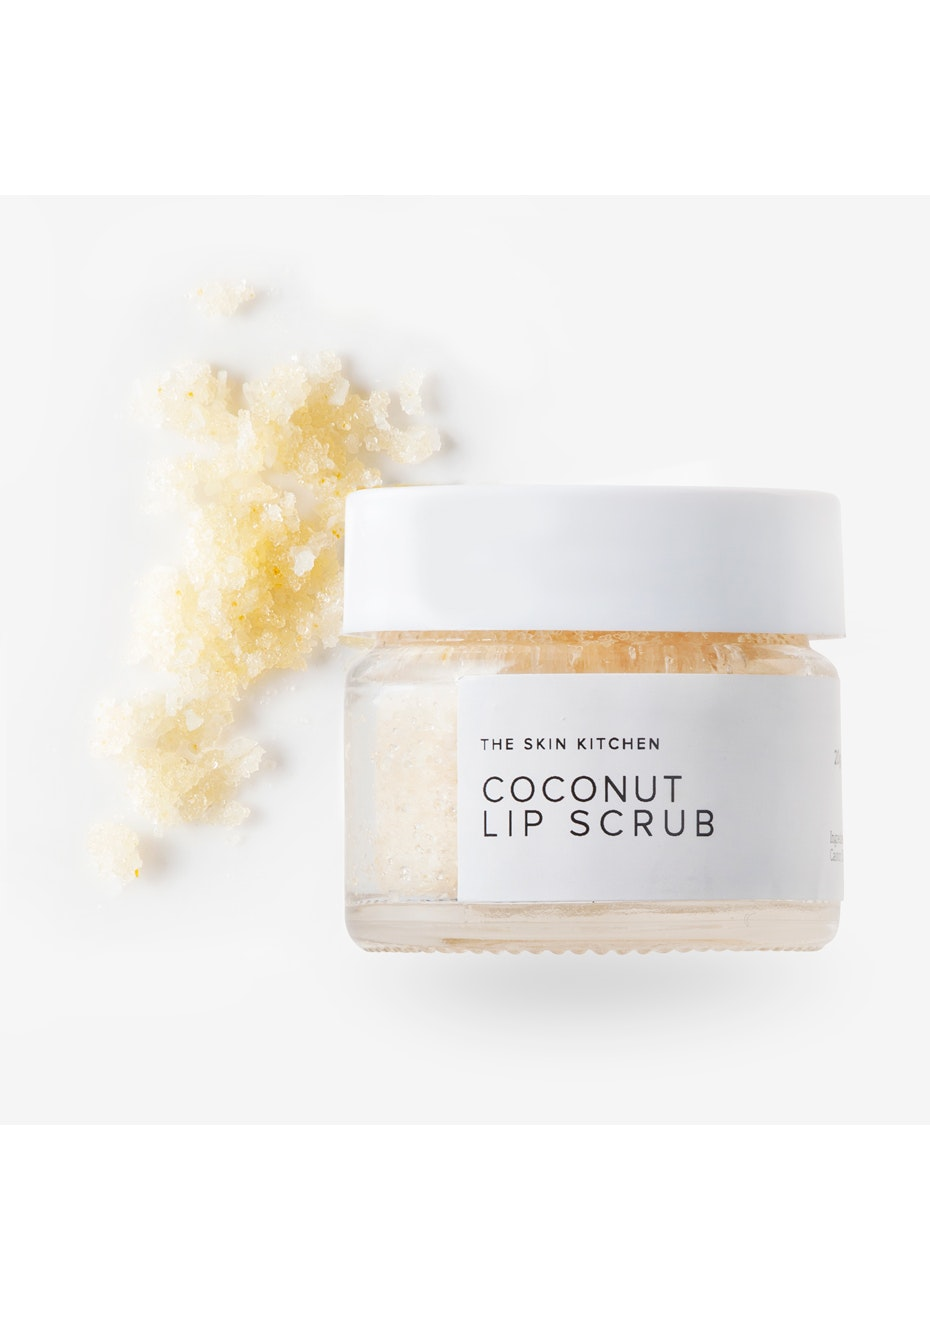 The Skin Kitchen - Coconut Lip Scrub - 20g